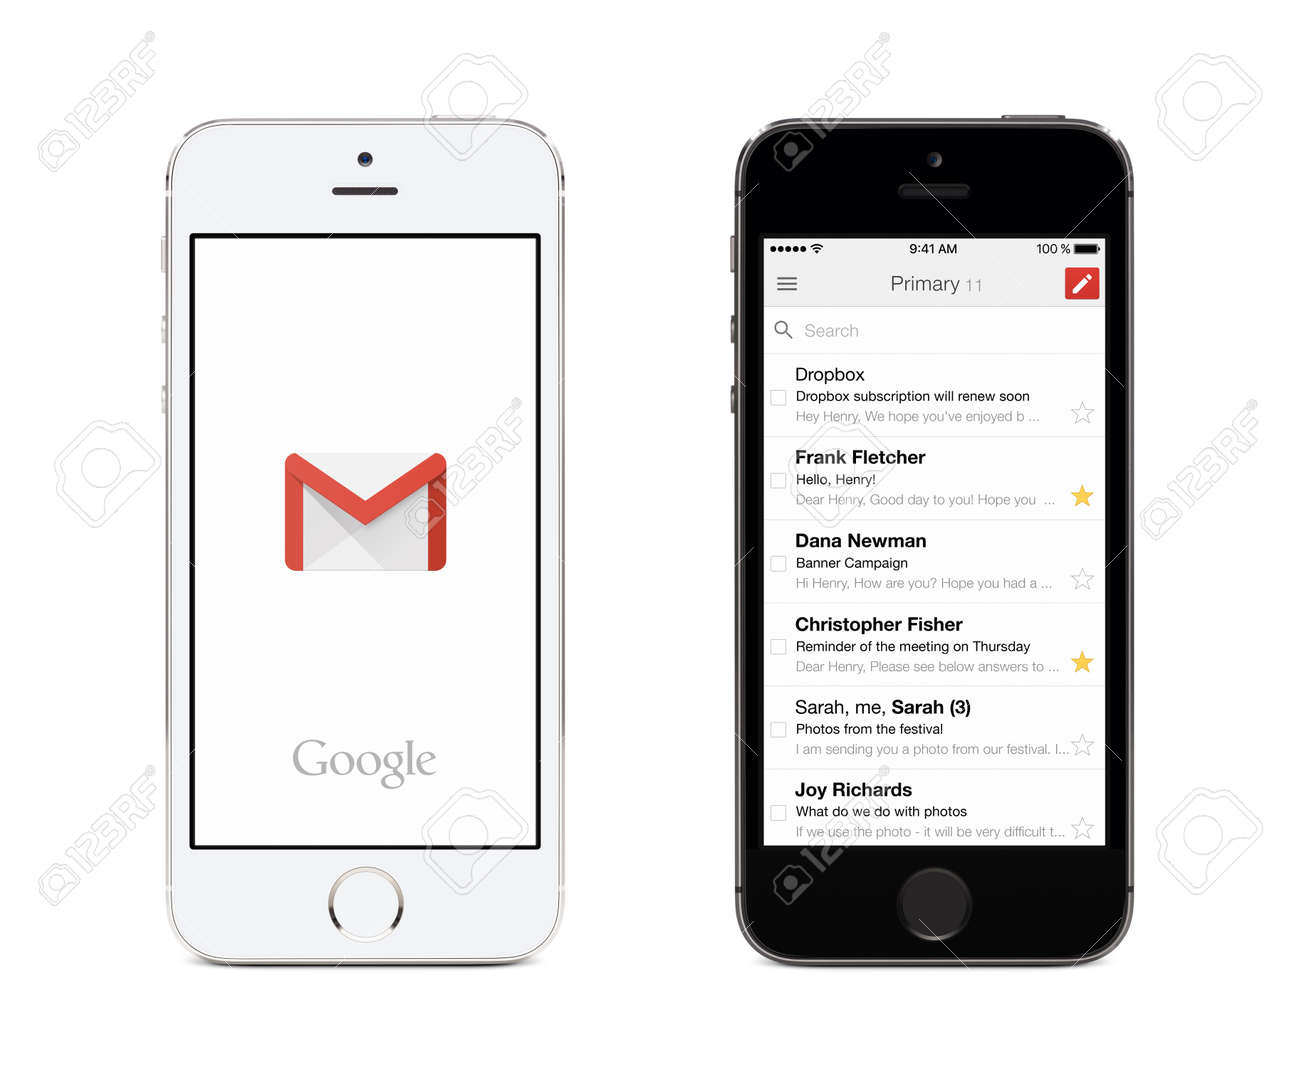 Varna, Bulgaria - May 26, 2015: Google Gmail app logo and Gmail inbox on the front view white and black Apple iPhones. Gmail is a free e-mail service provided by Google. Isolated on white background. - 49200372